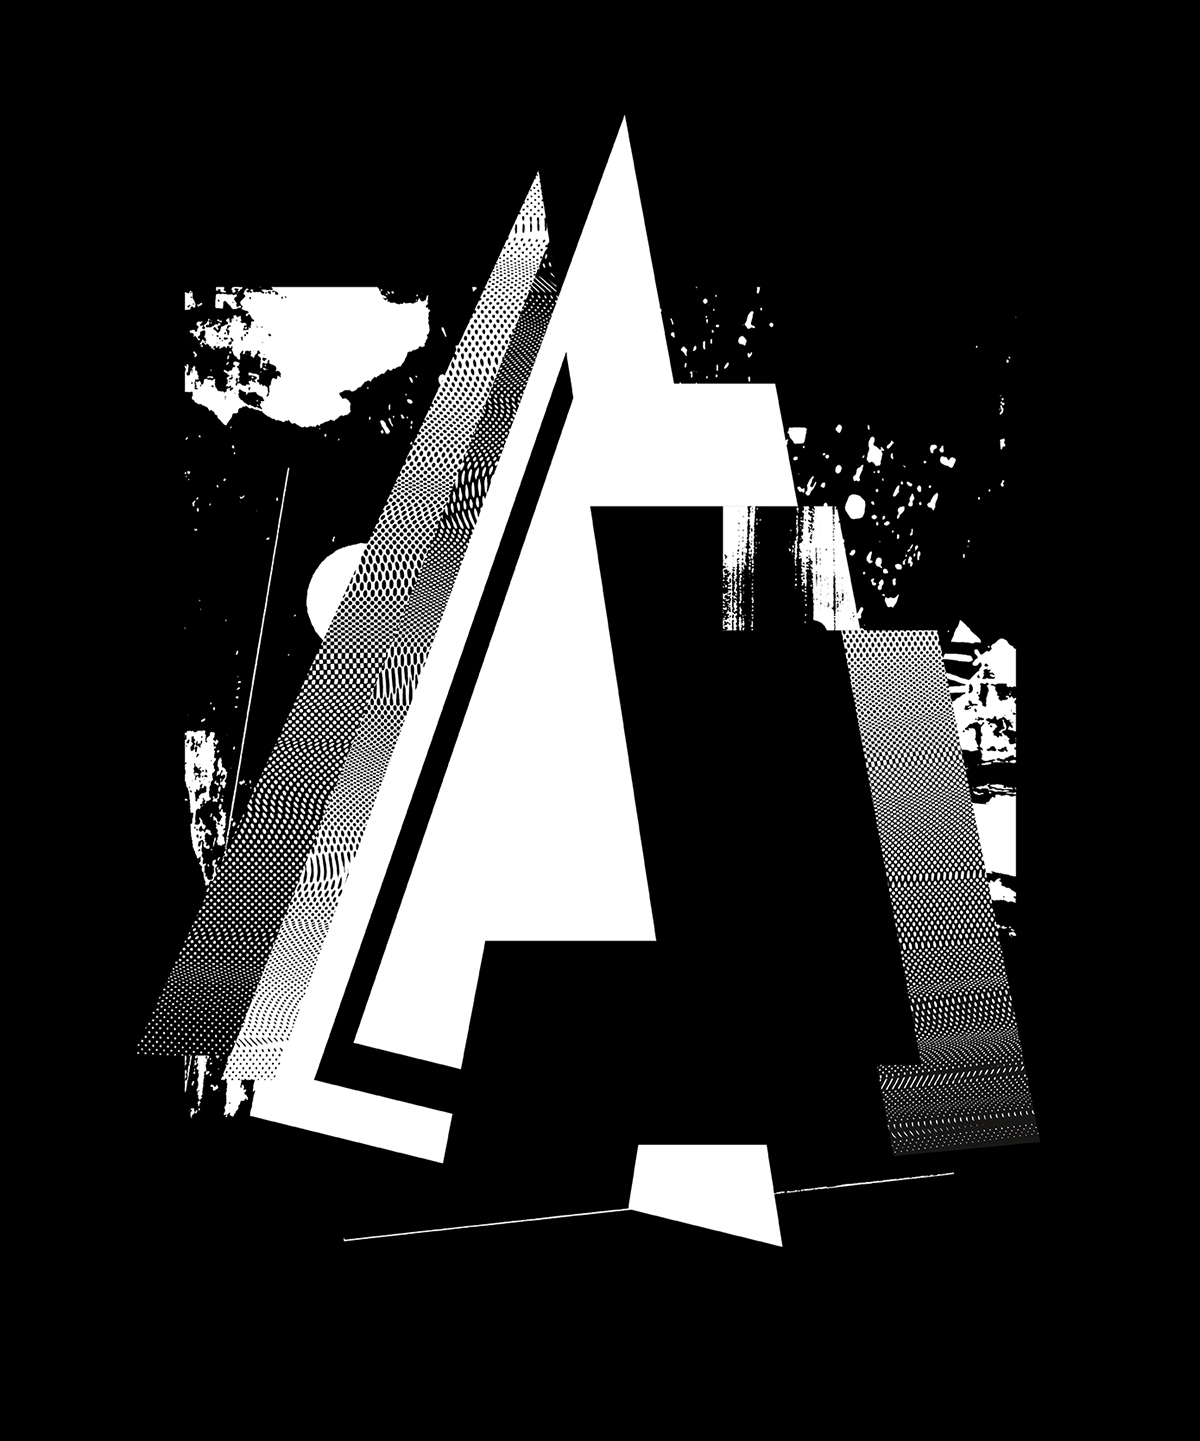 A-Initial: Collage, combining alphabetic fragments and grafic images with screen structures